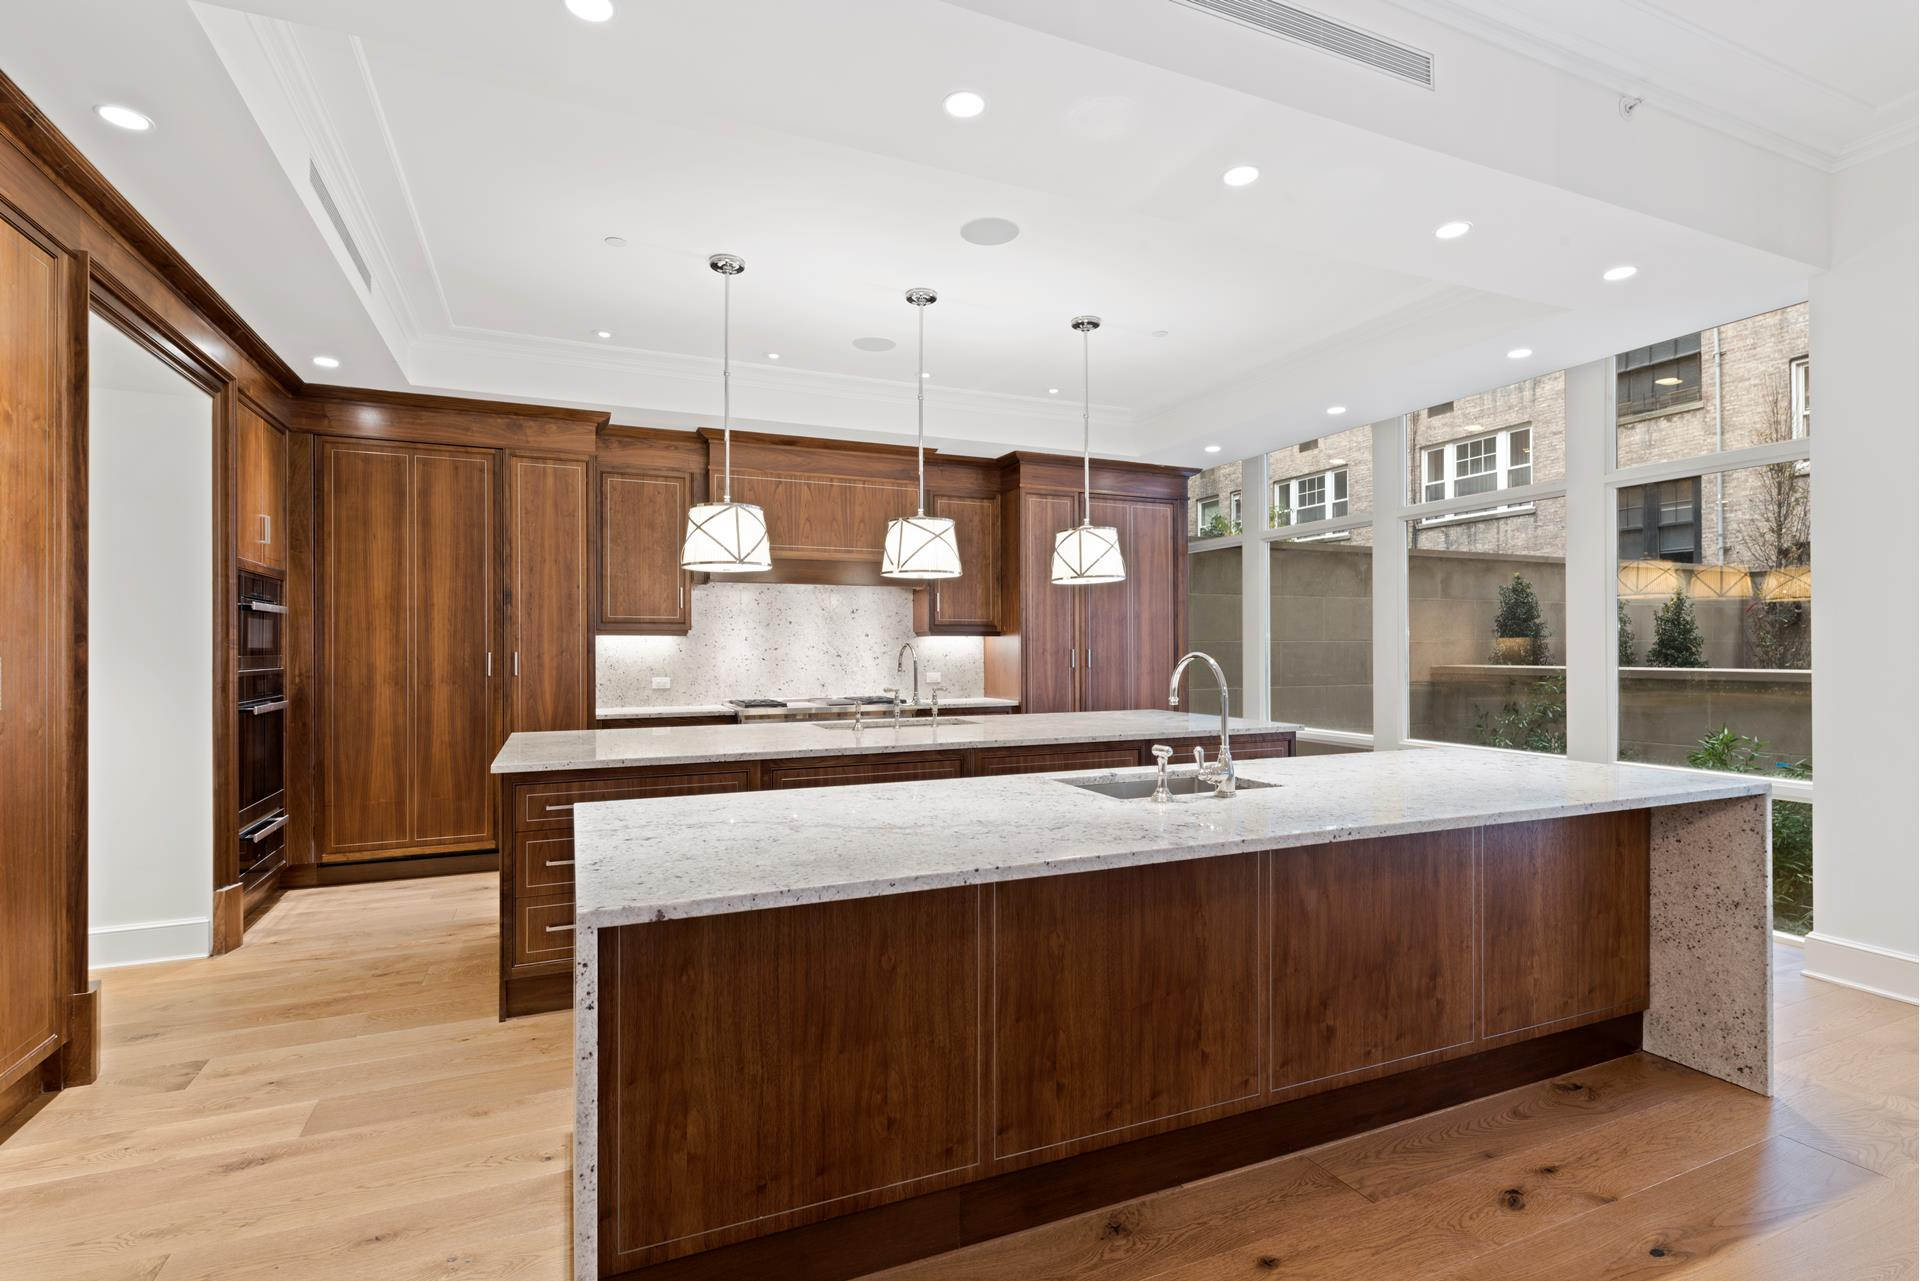 Multi-Family Home for Sale at 110 East 76th Street 110 East 76th Street New York, New York 10021 United States